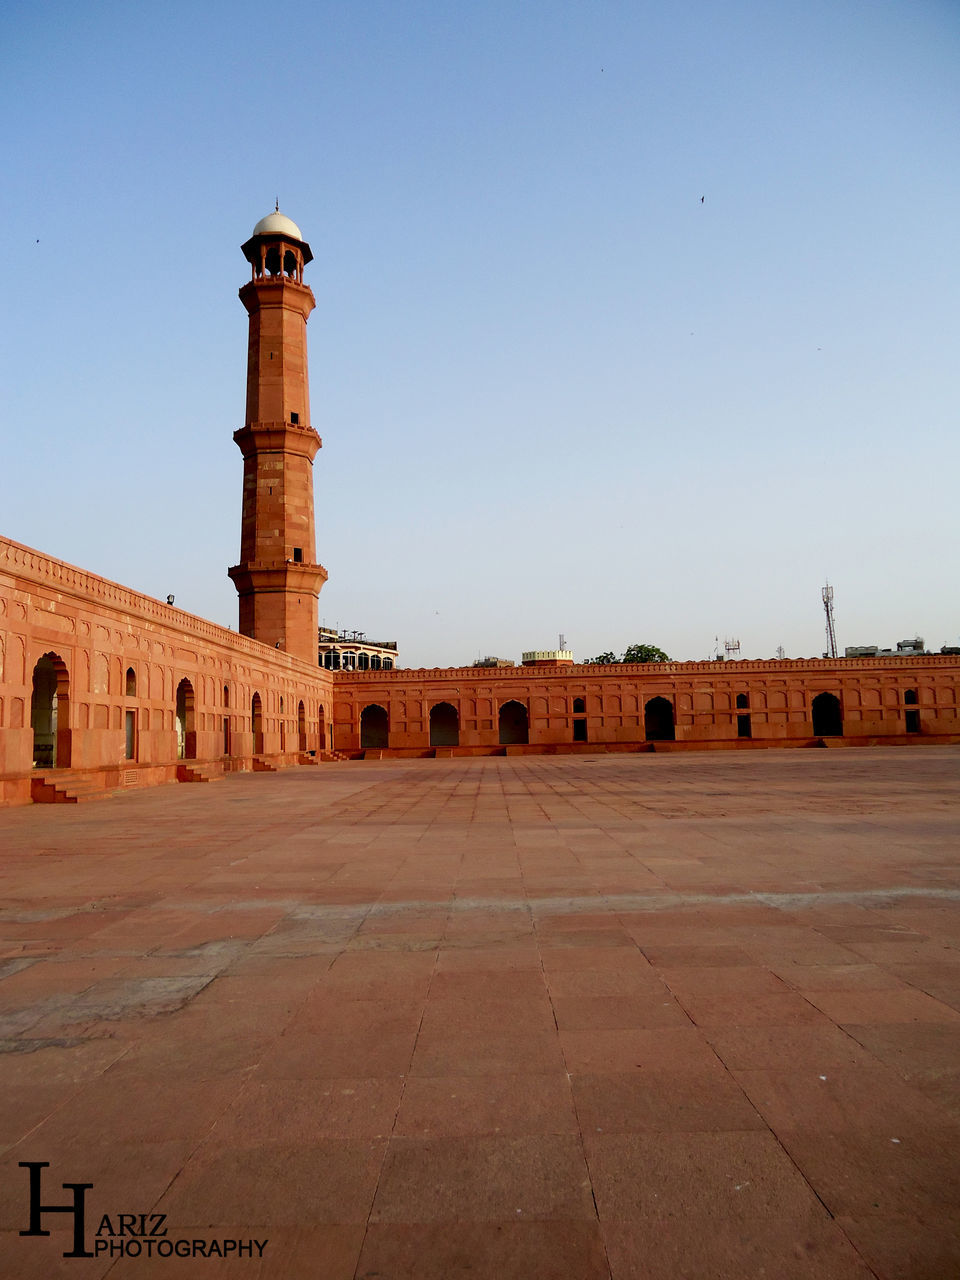 history, architecture, built structure, clear sky, ancient, building exterior, outdoors, day, no people, sky